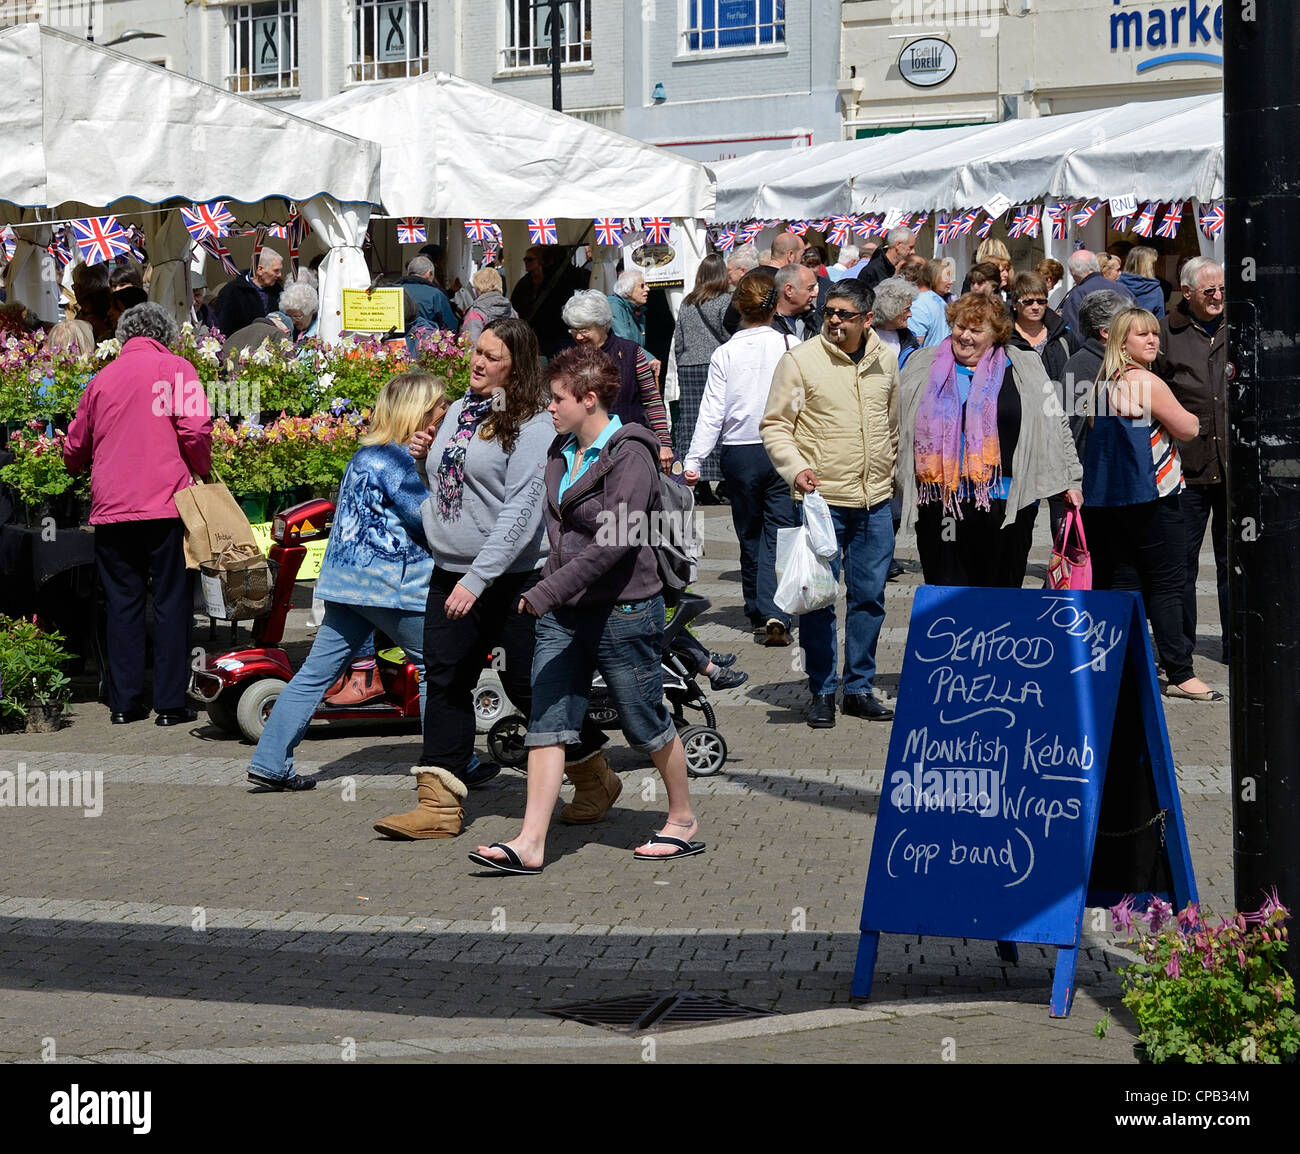 A busy market day in Truro, Cornwall, Uk - Stock Image